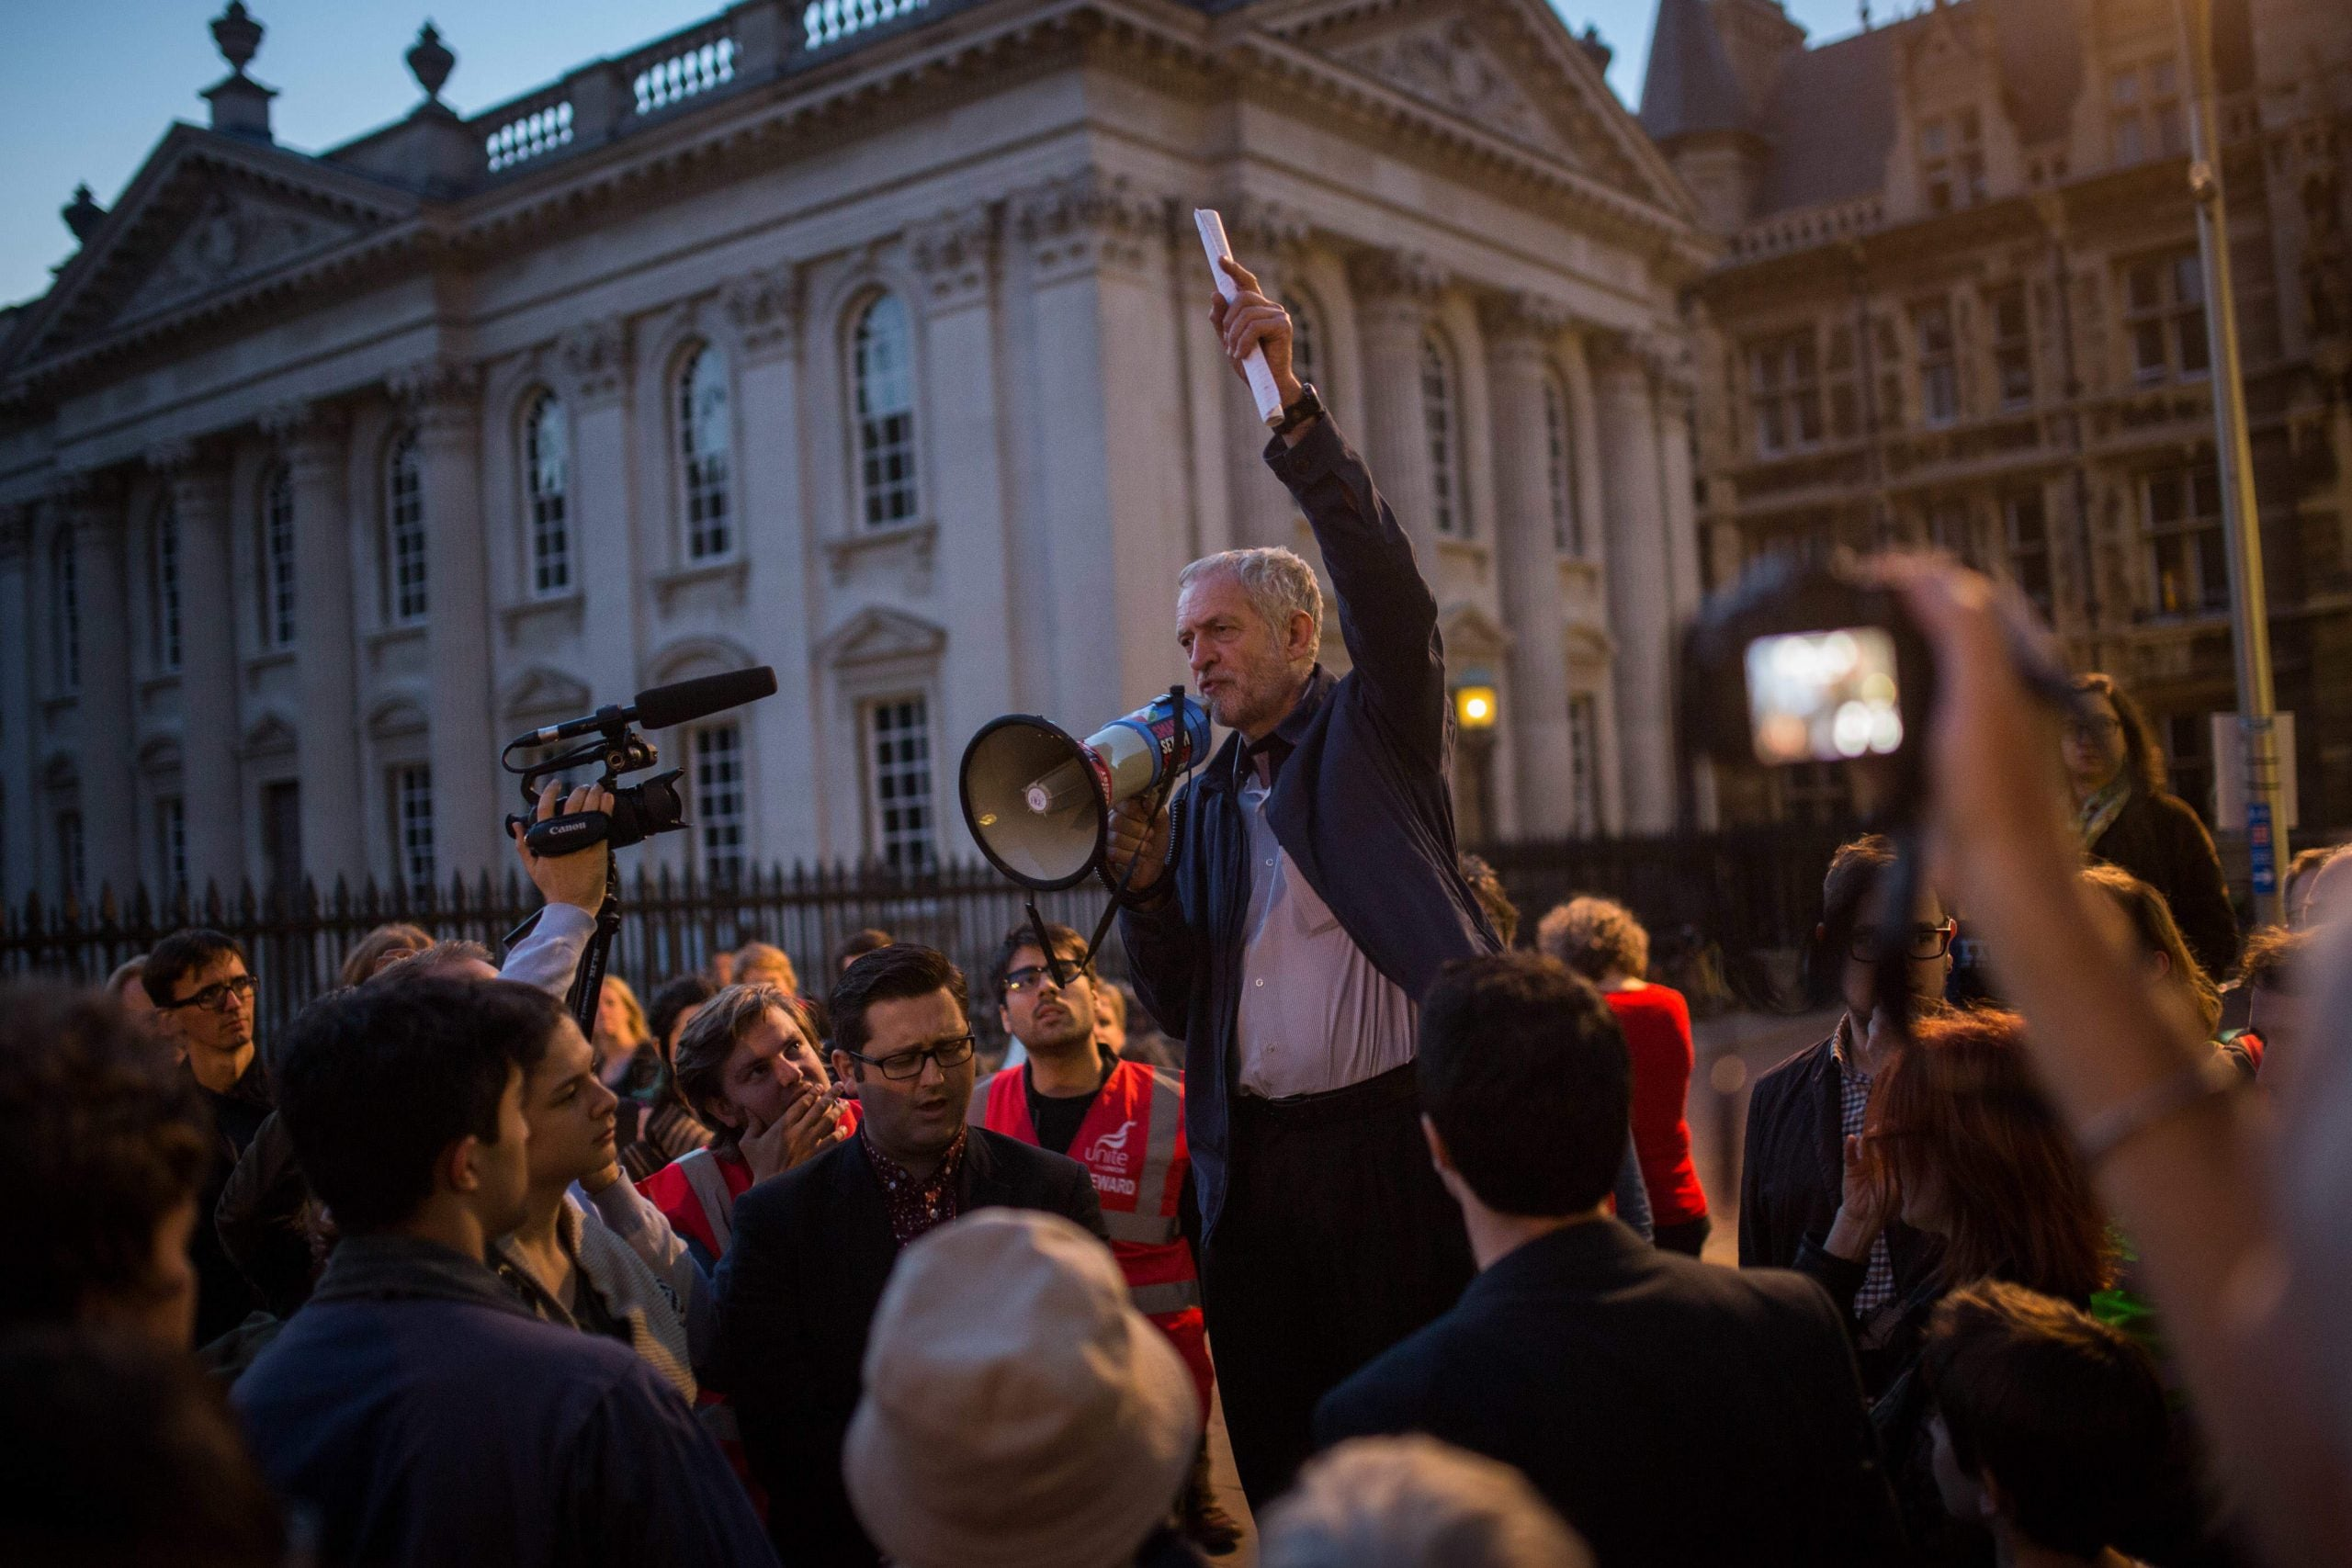 The effects of the Mancession, why Labour should move north, and my summer of Corbyn